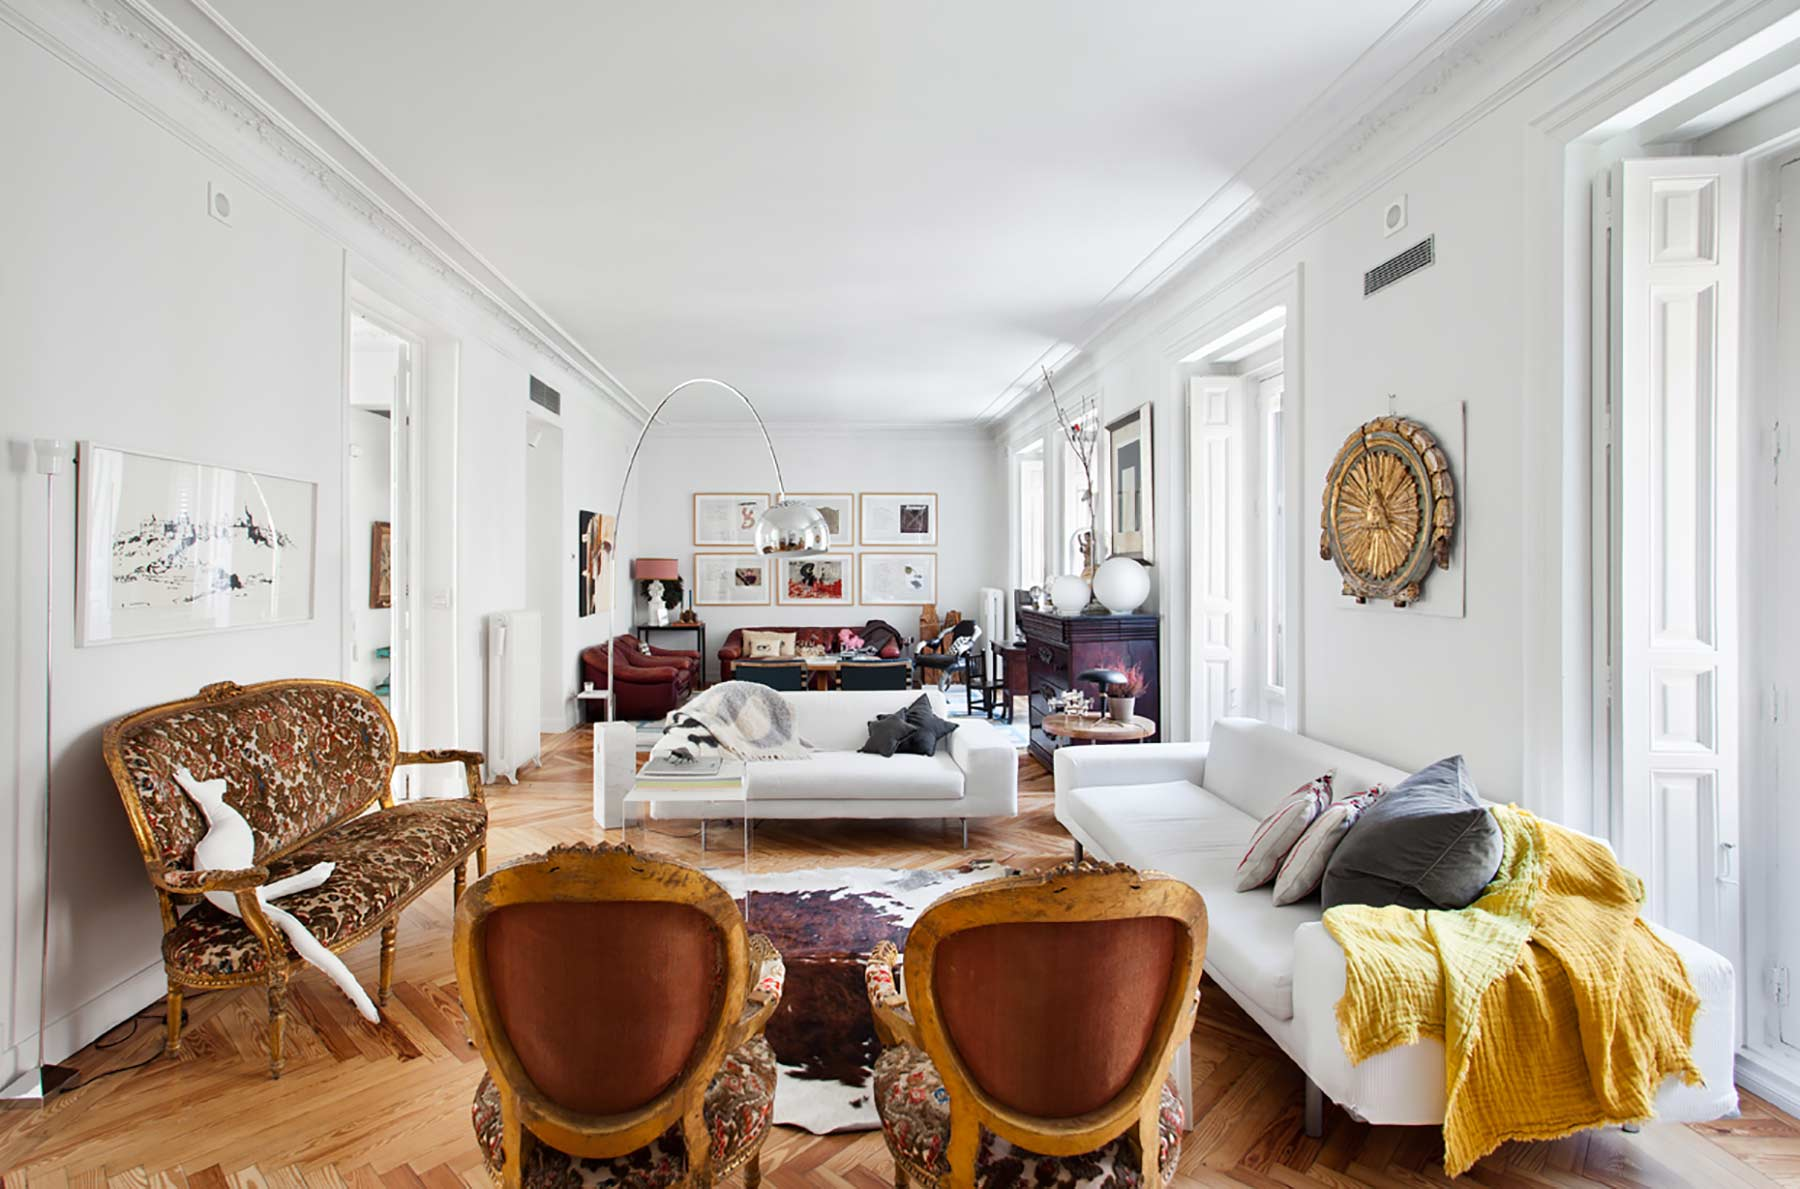 Madrid - Spain - Apartment , 4 rooms, 4 bedrooms - Slideshow Picture 2